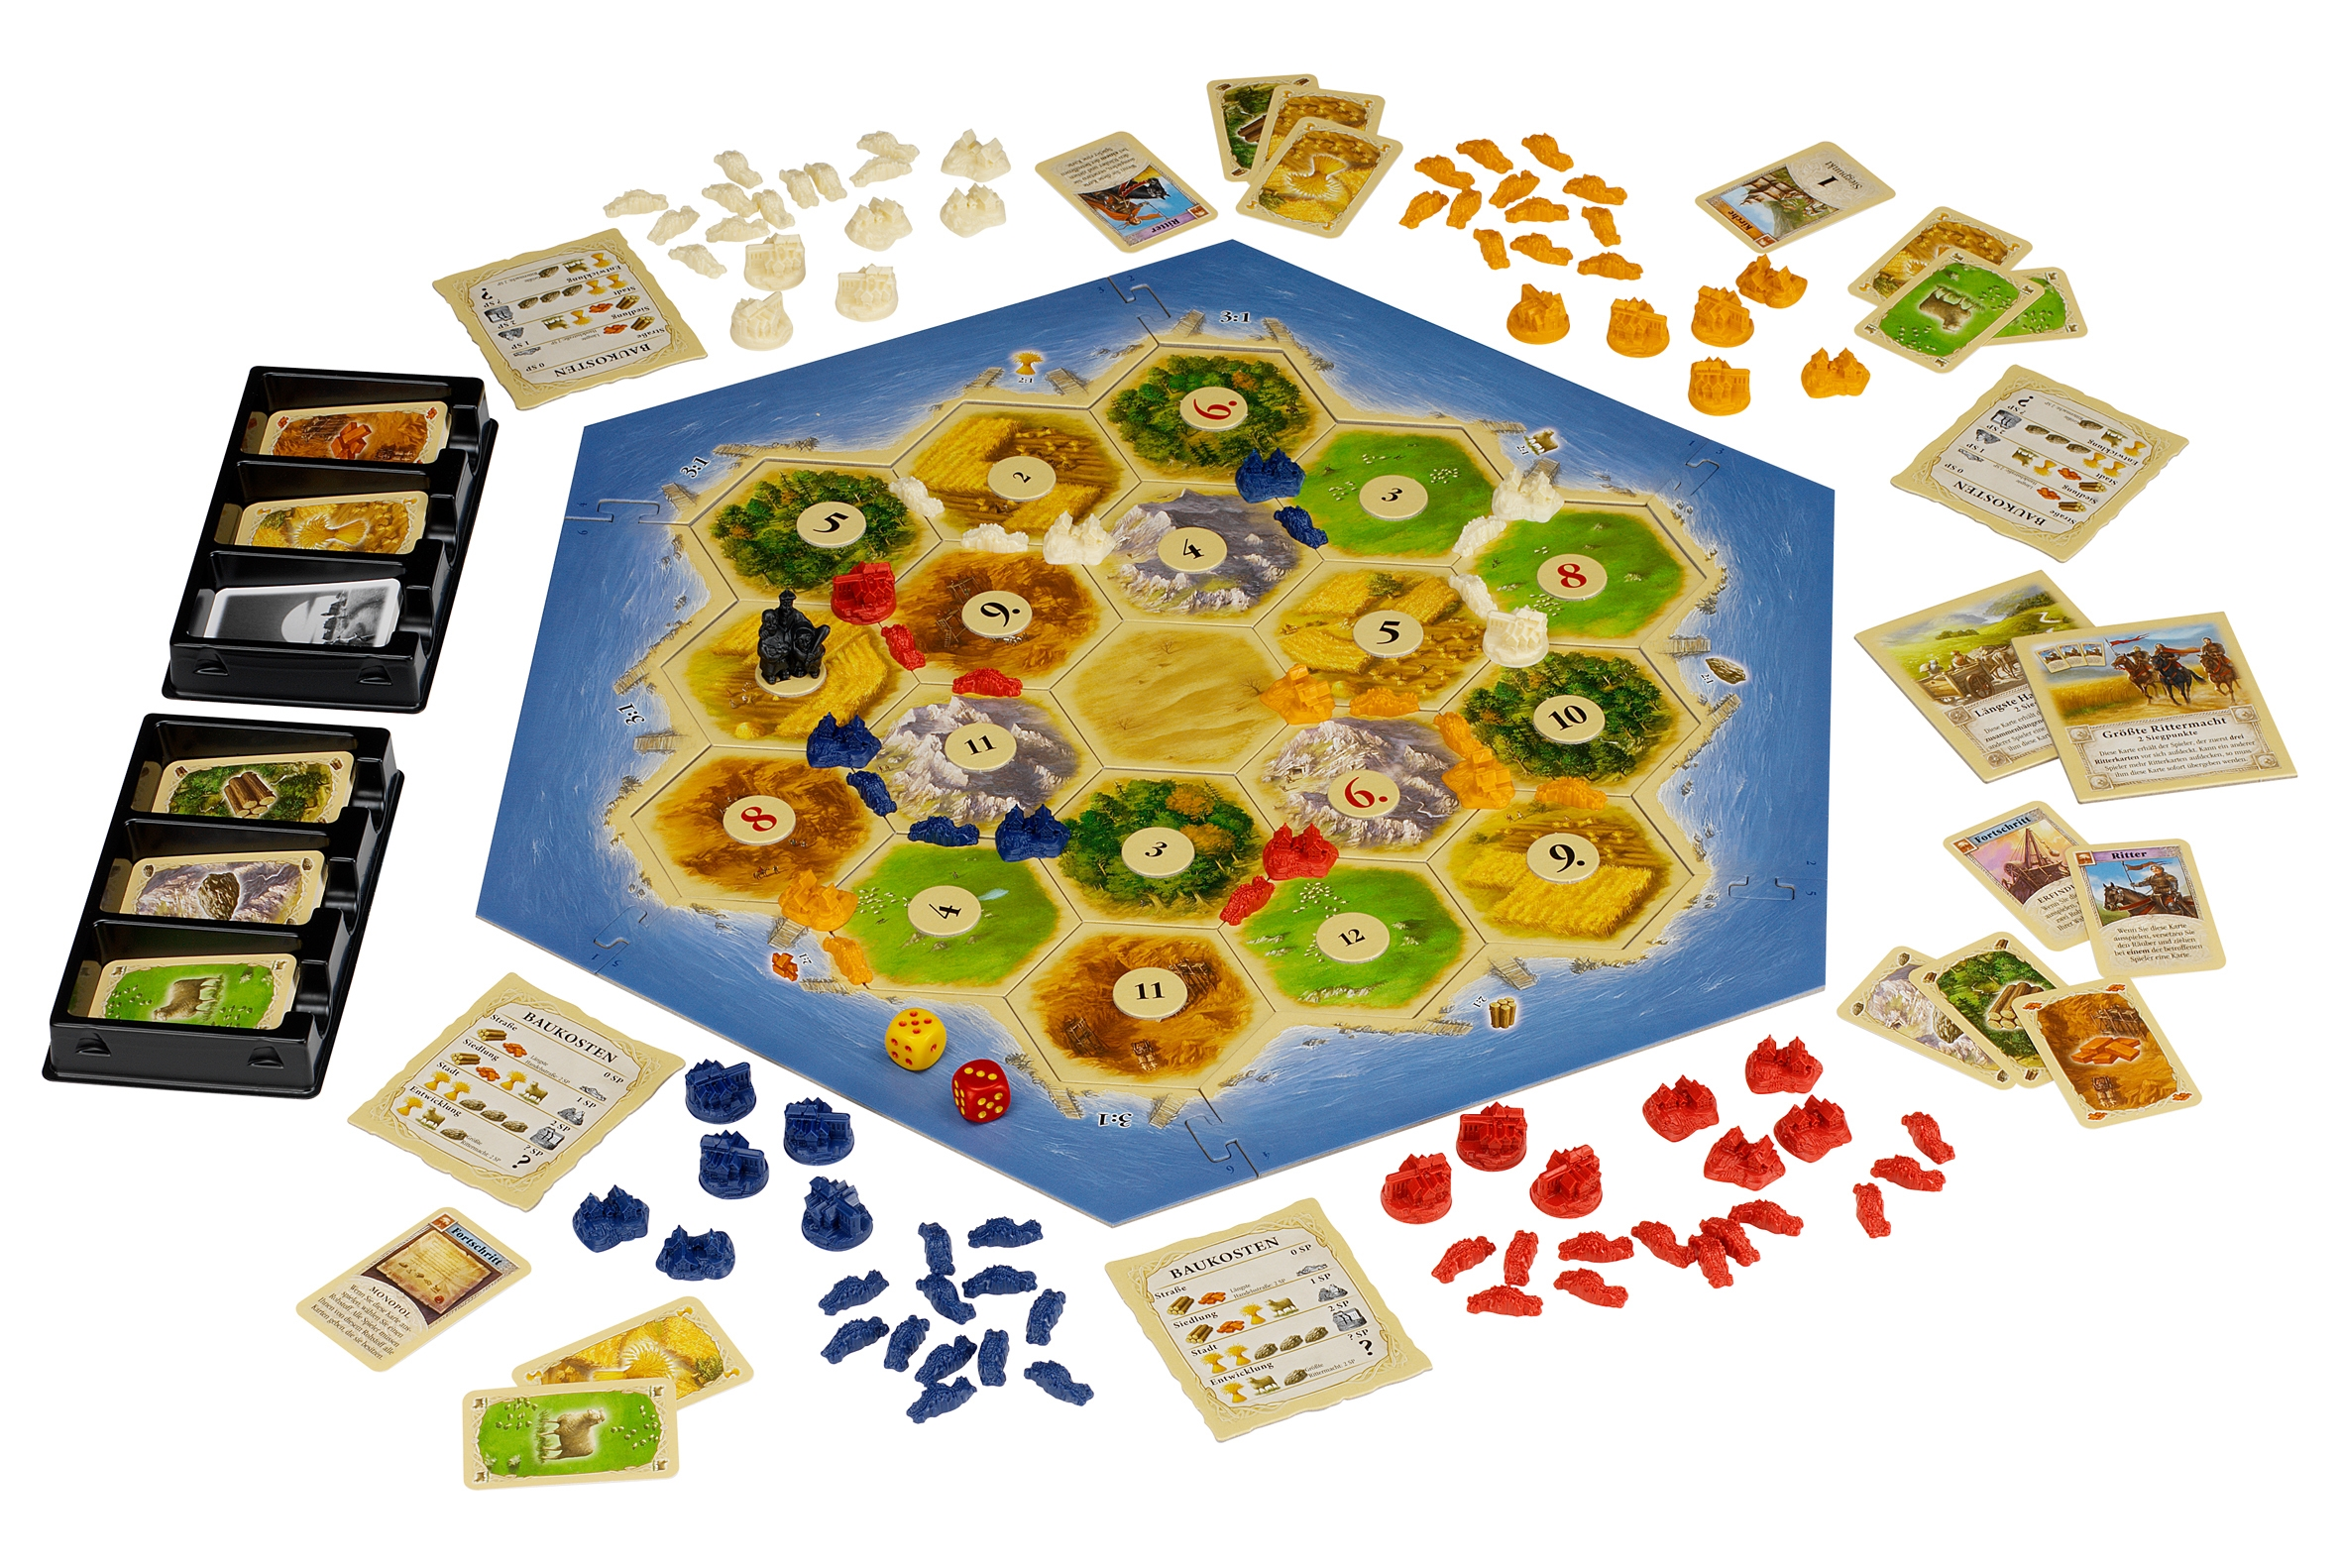 catan das spiel brettspiele spiele erweiterungen catan. Black Bedroom Furniture Sets. Home Design Ideas